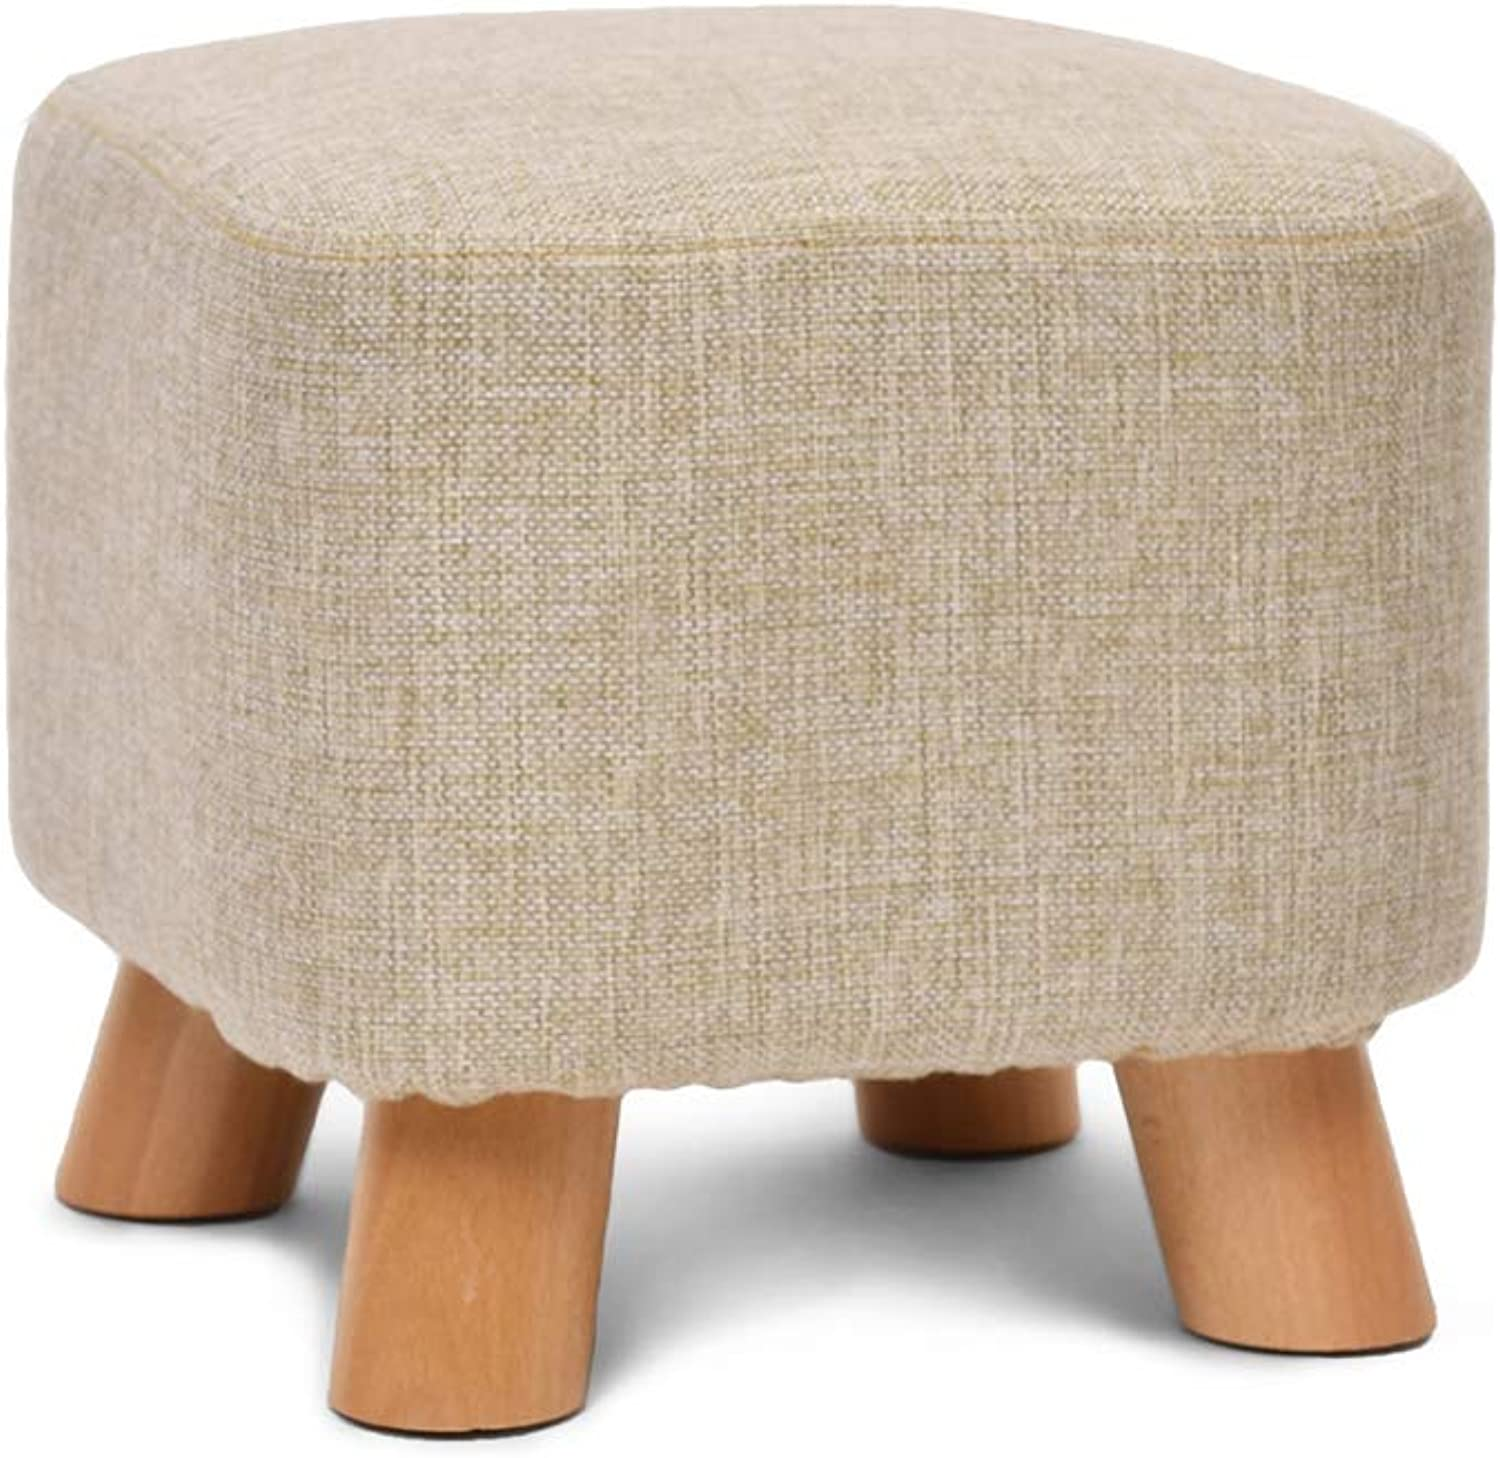 Footstool, Round shoes benchwooden Leg clothcotton sofaliving Room bedroomhome HPLL (color   5, Size   28  35  17.5cm)